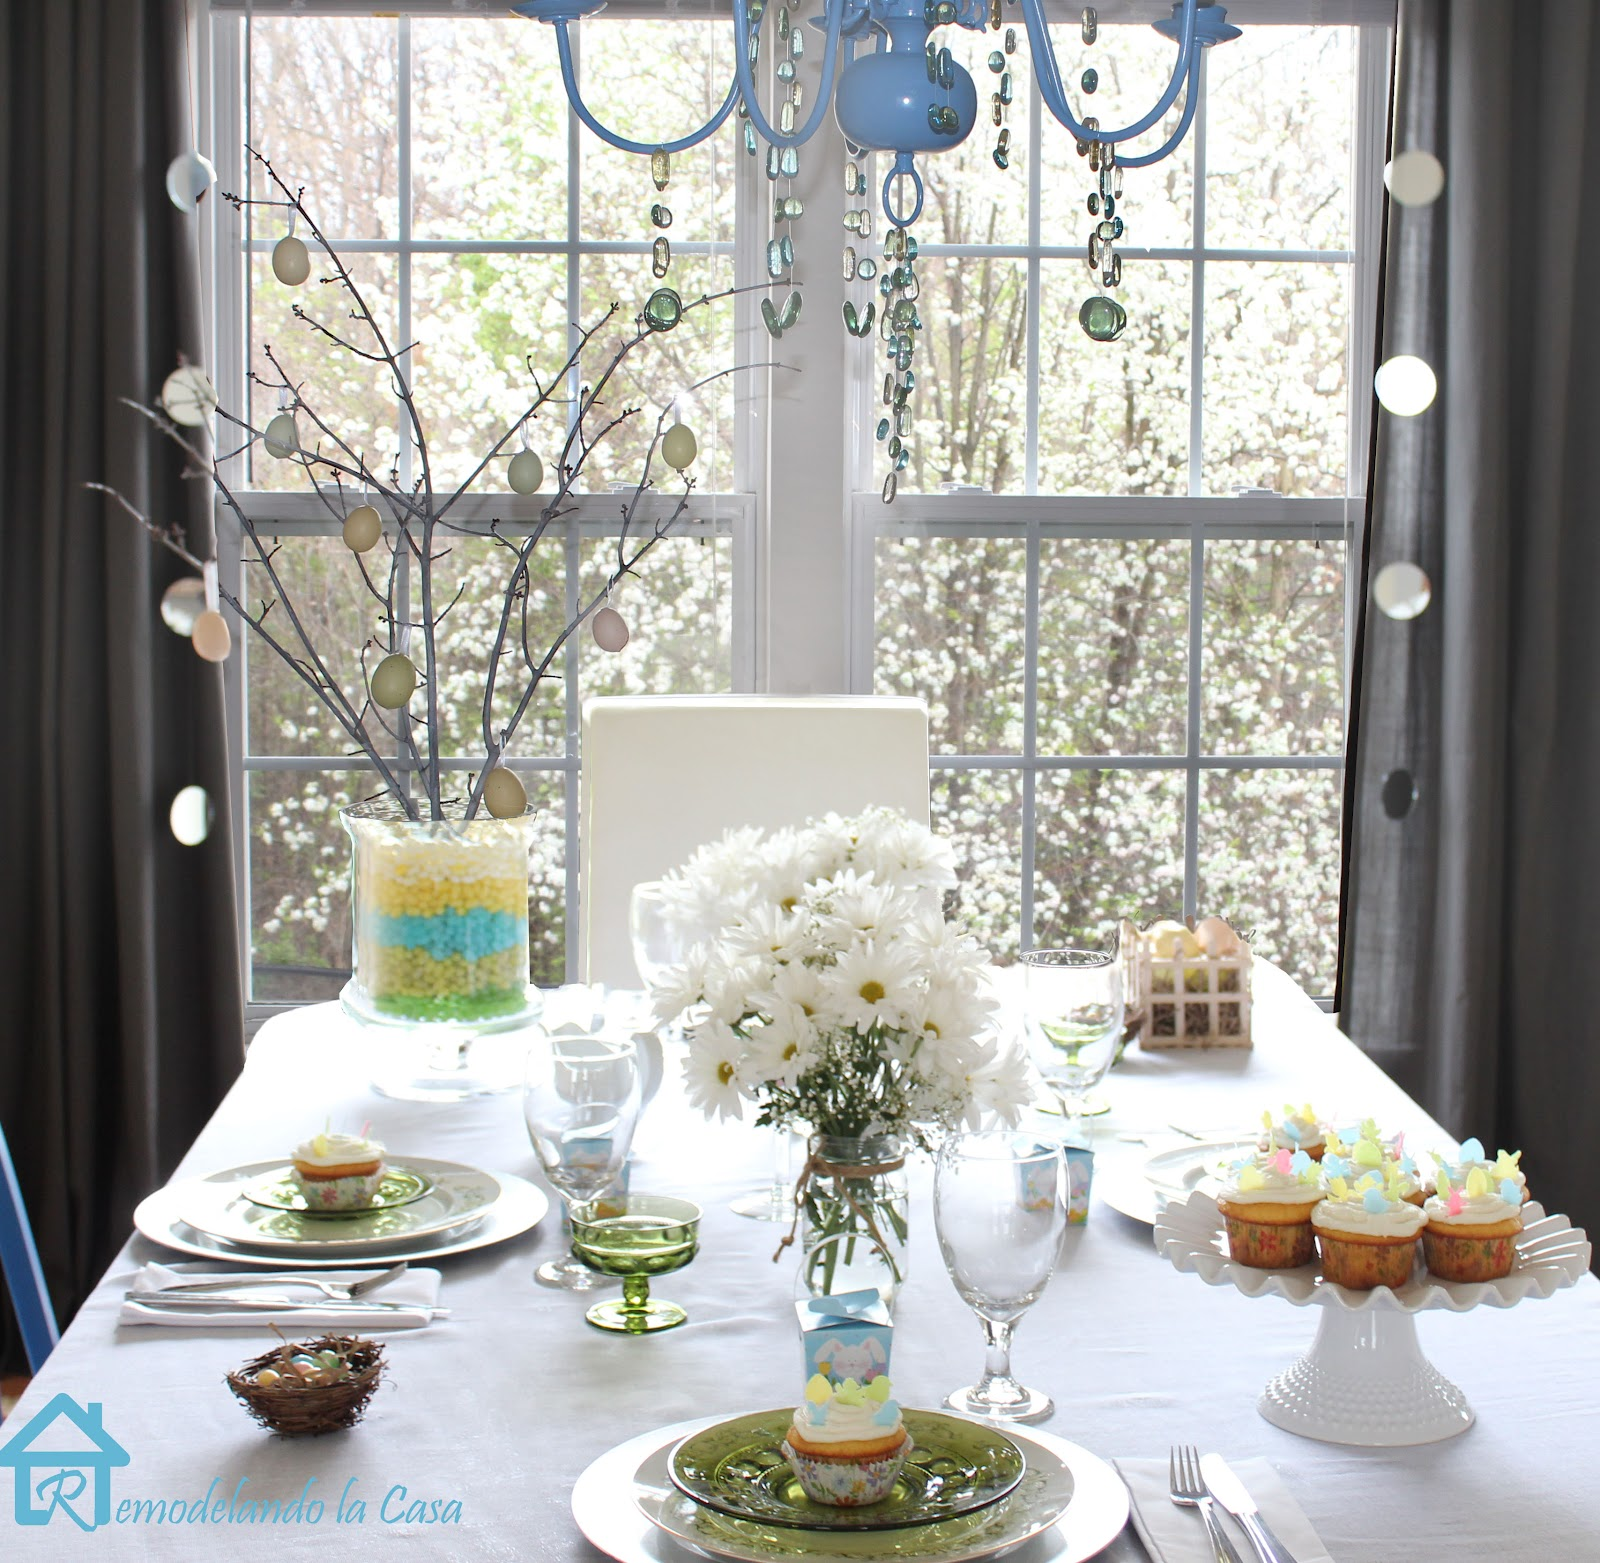 Spring Tablescapes Unique With Easter Table Scape Photo